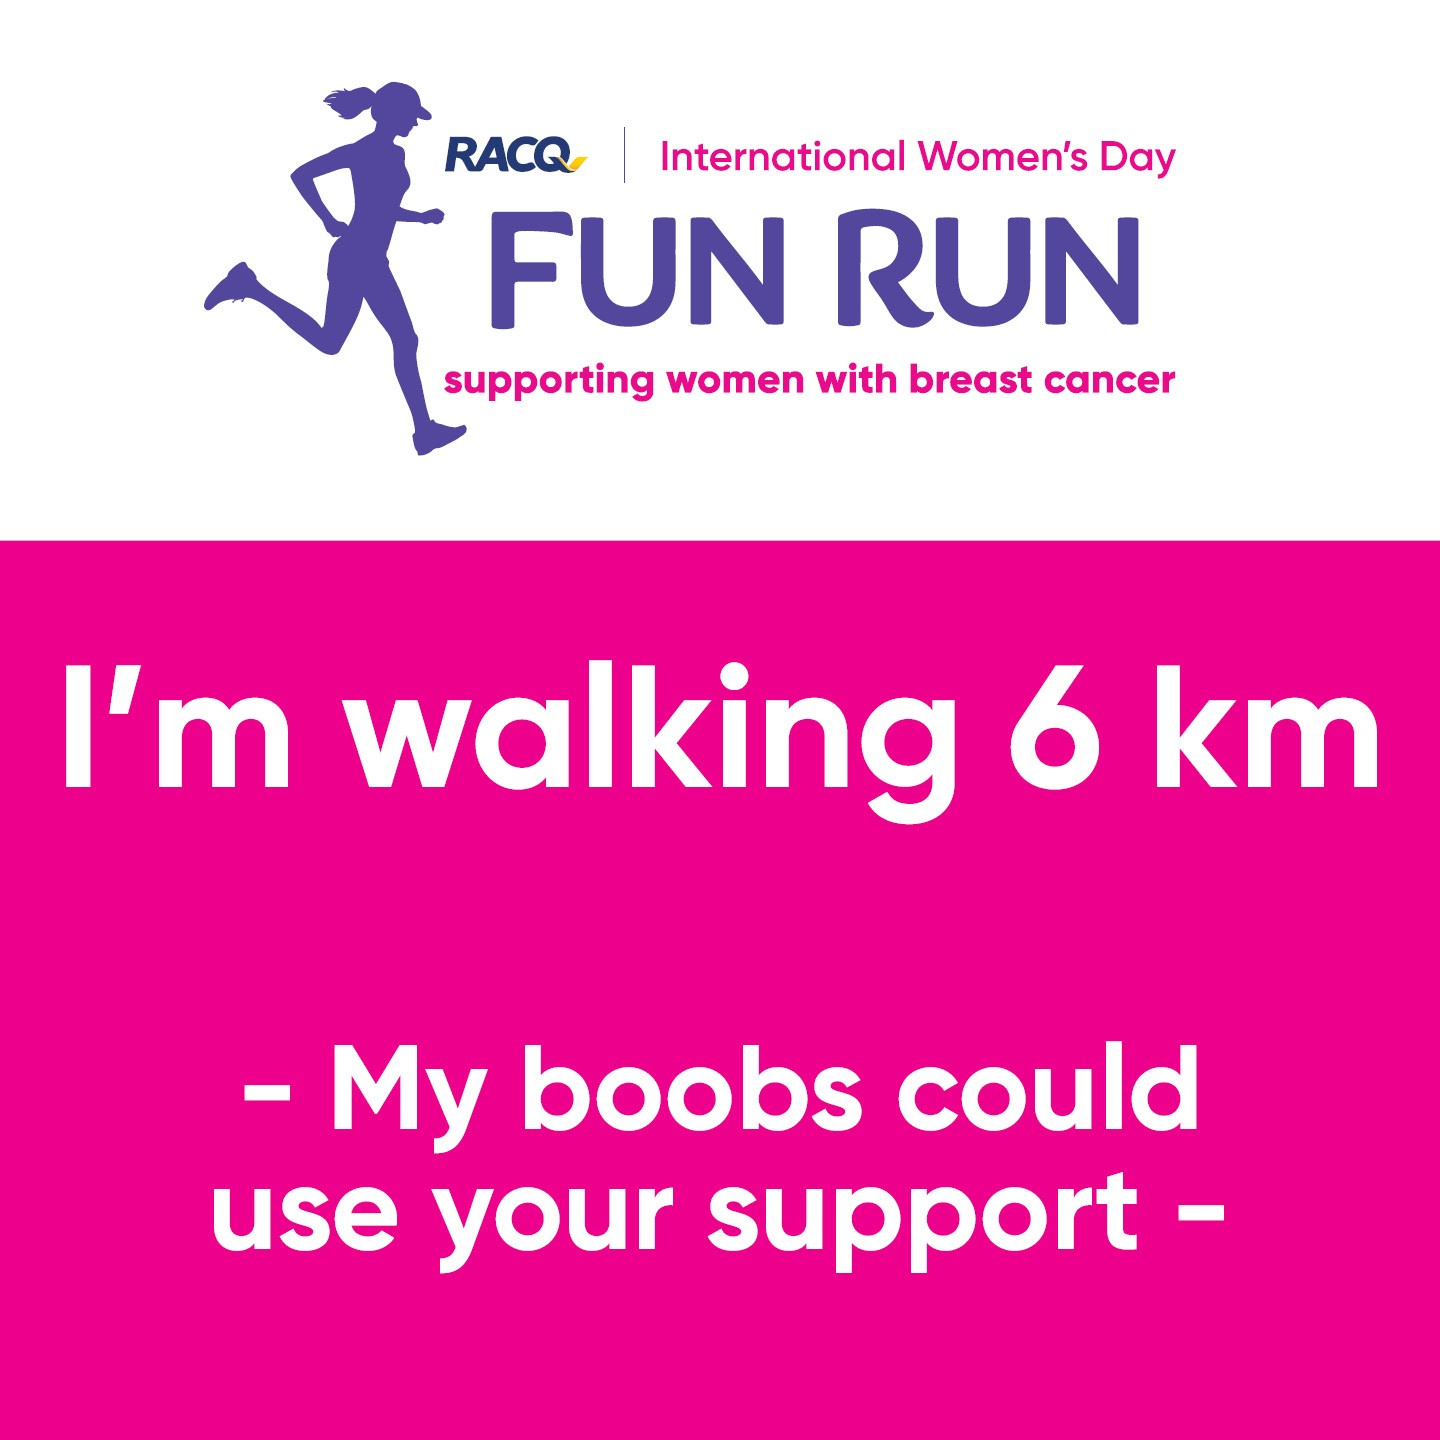 Instagram - I'm walking 6 km - My boobs could use your support